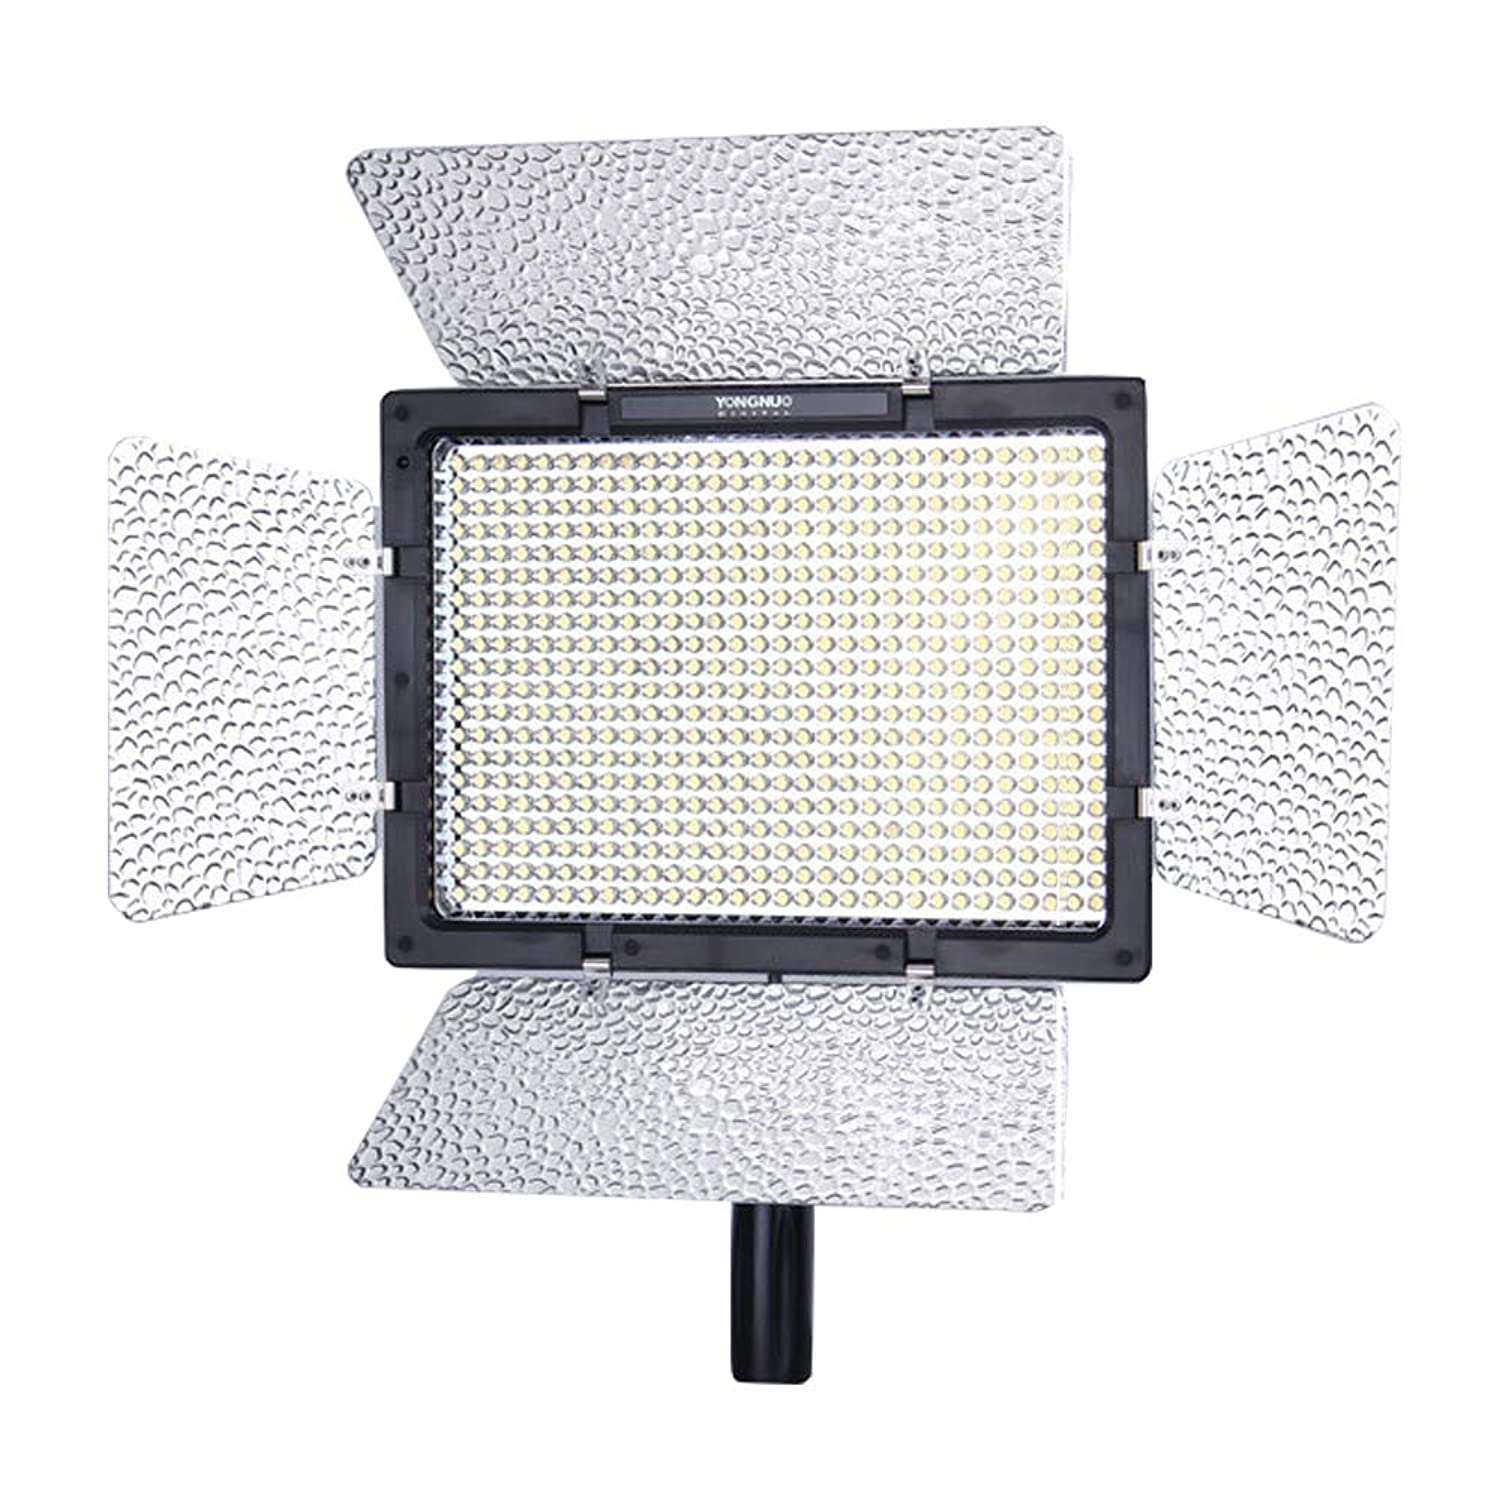 GUANG 600L LED Video Light Photography Light Fill Light Remote Control Brightness 3200 or 5500K Color Temperature